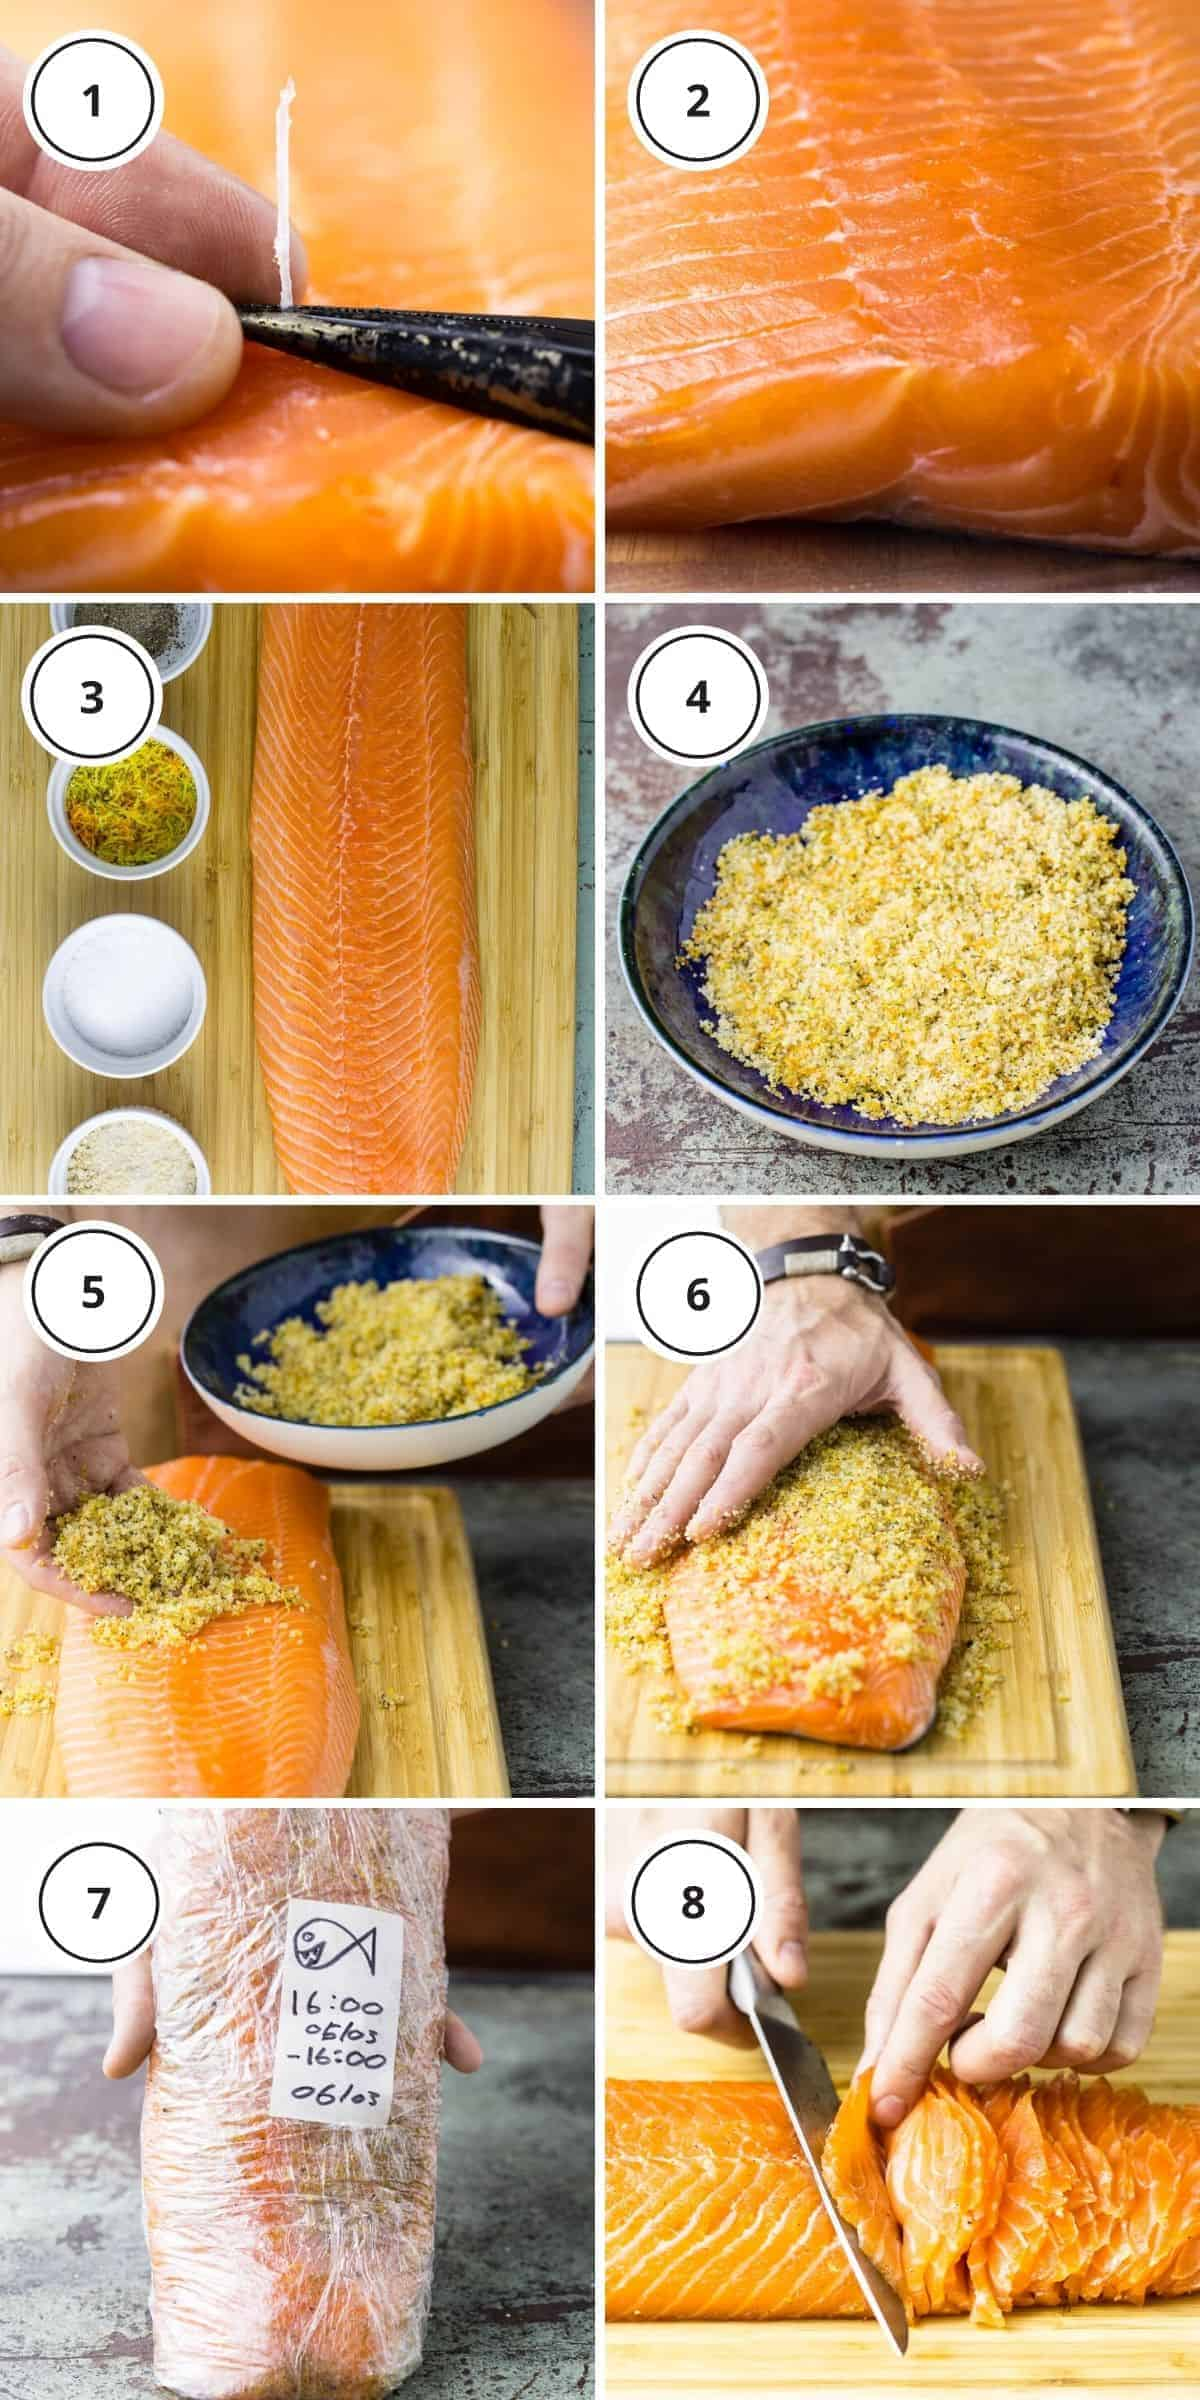 picture steps of written instructions how to cure the salmon